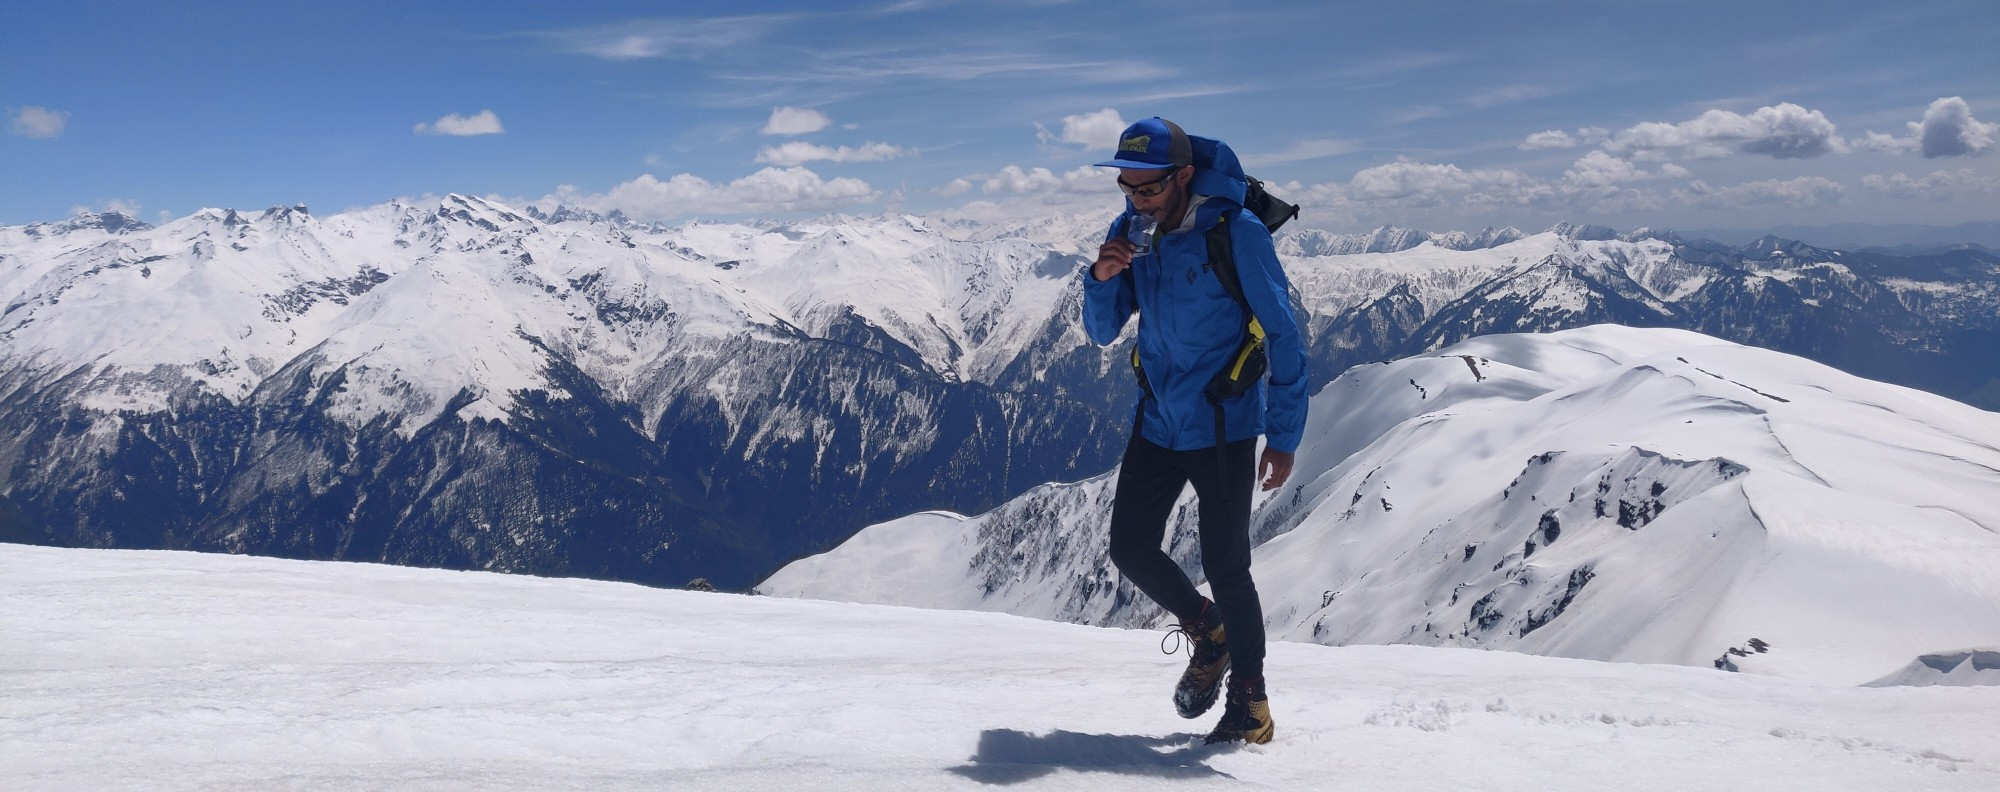 Indian trail runner and mountaineer Kieren D'Souza hiking above his town and dreaming about the Friendship Peak 'FKT'. Photo: Handout